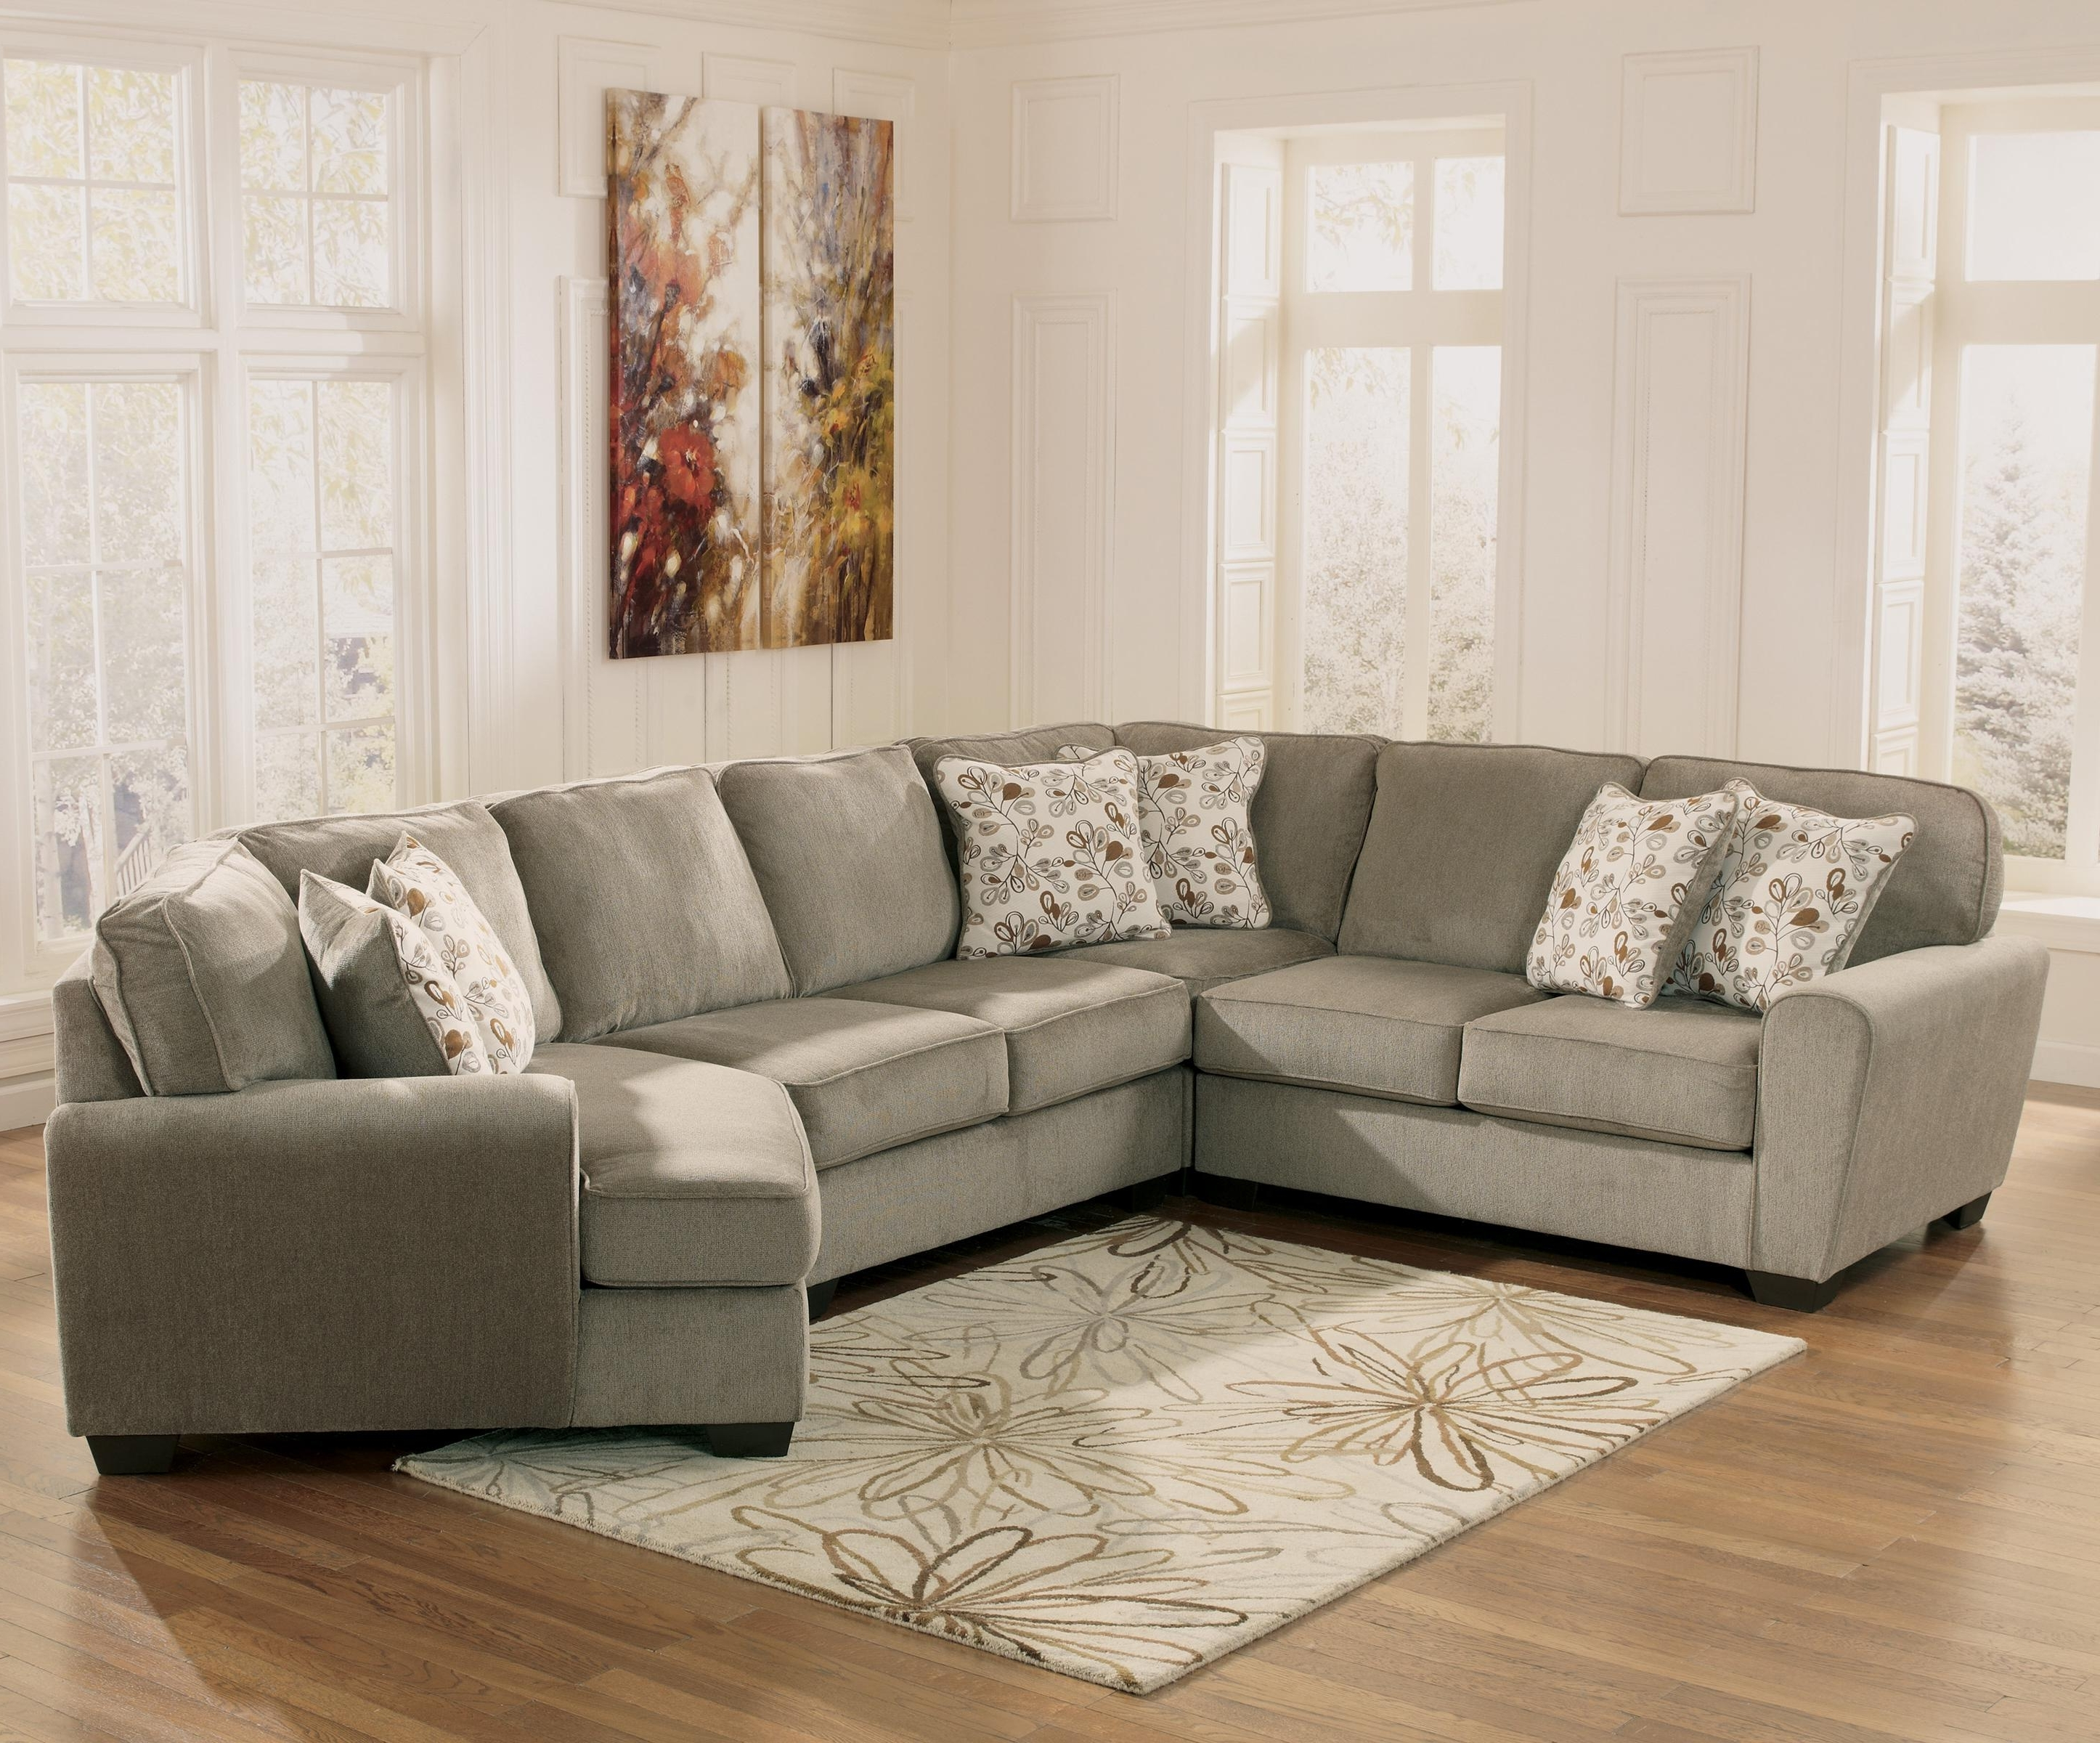 Most Recently Released Ashley Furniture Patola Park – Patina 4 Piece Small Sectional With With Regard To Green Bay Wi Sectional Sofas (View 11 of 15)